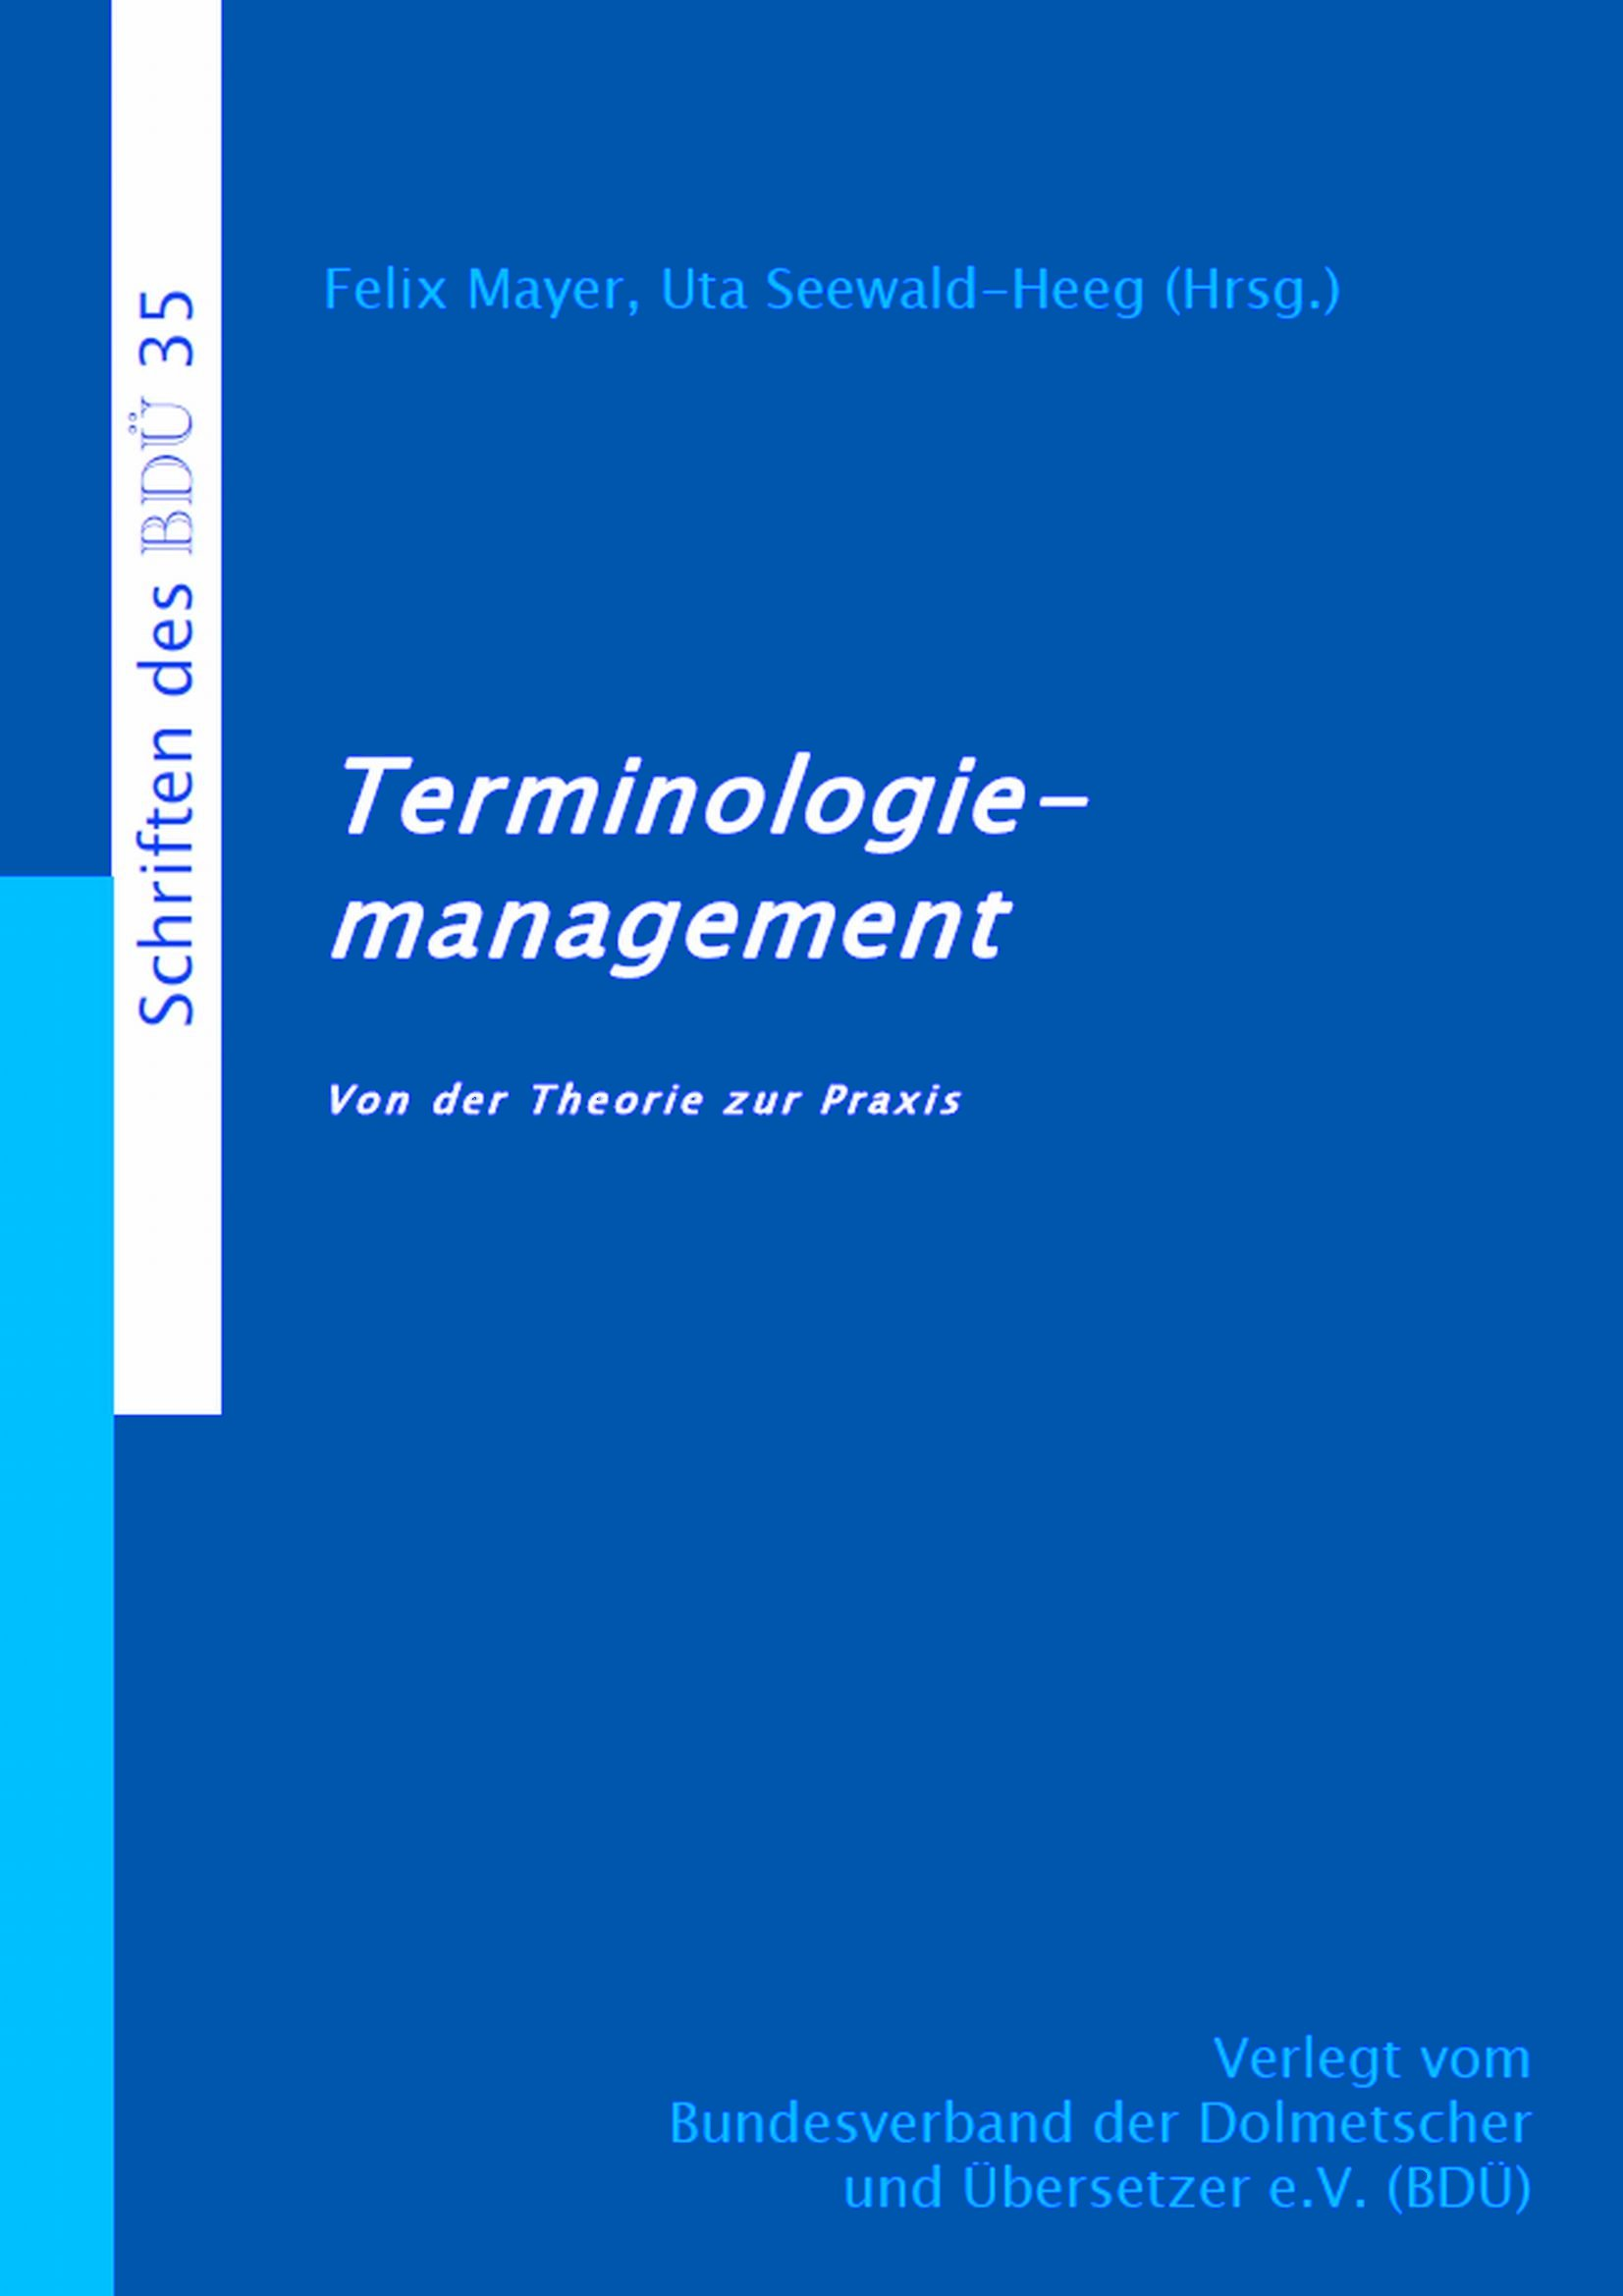 Terminologiemanagement